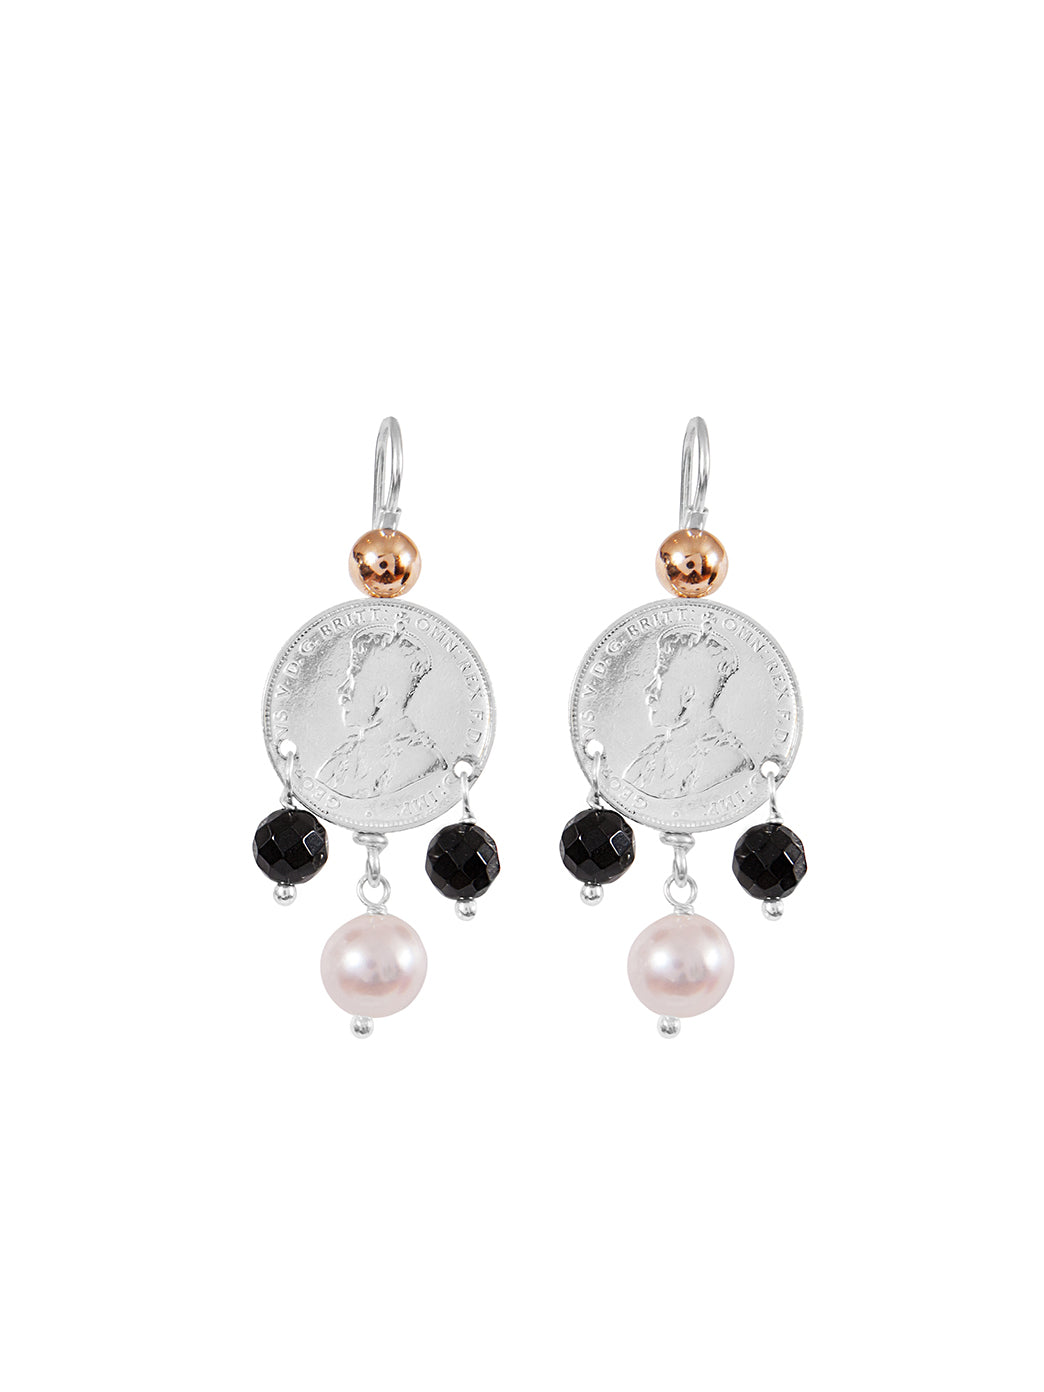 Fiorina Jewellery Mid Coin 3 Drop Earrings Black Onyx